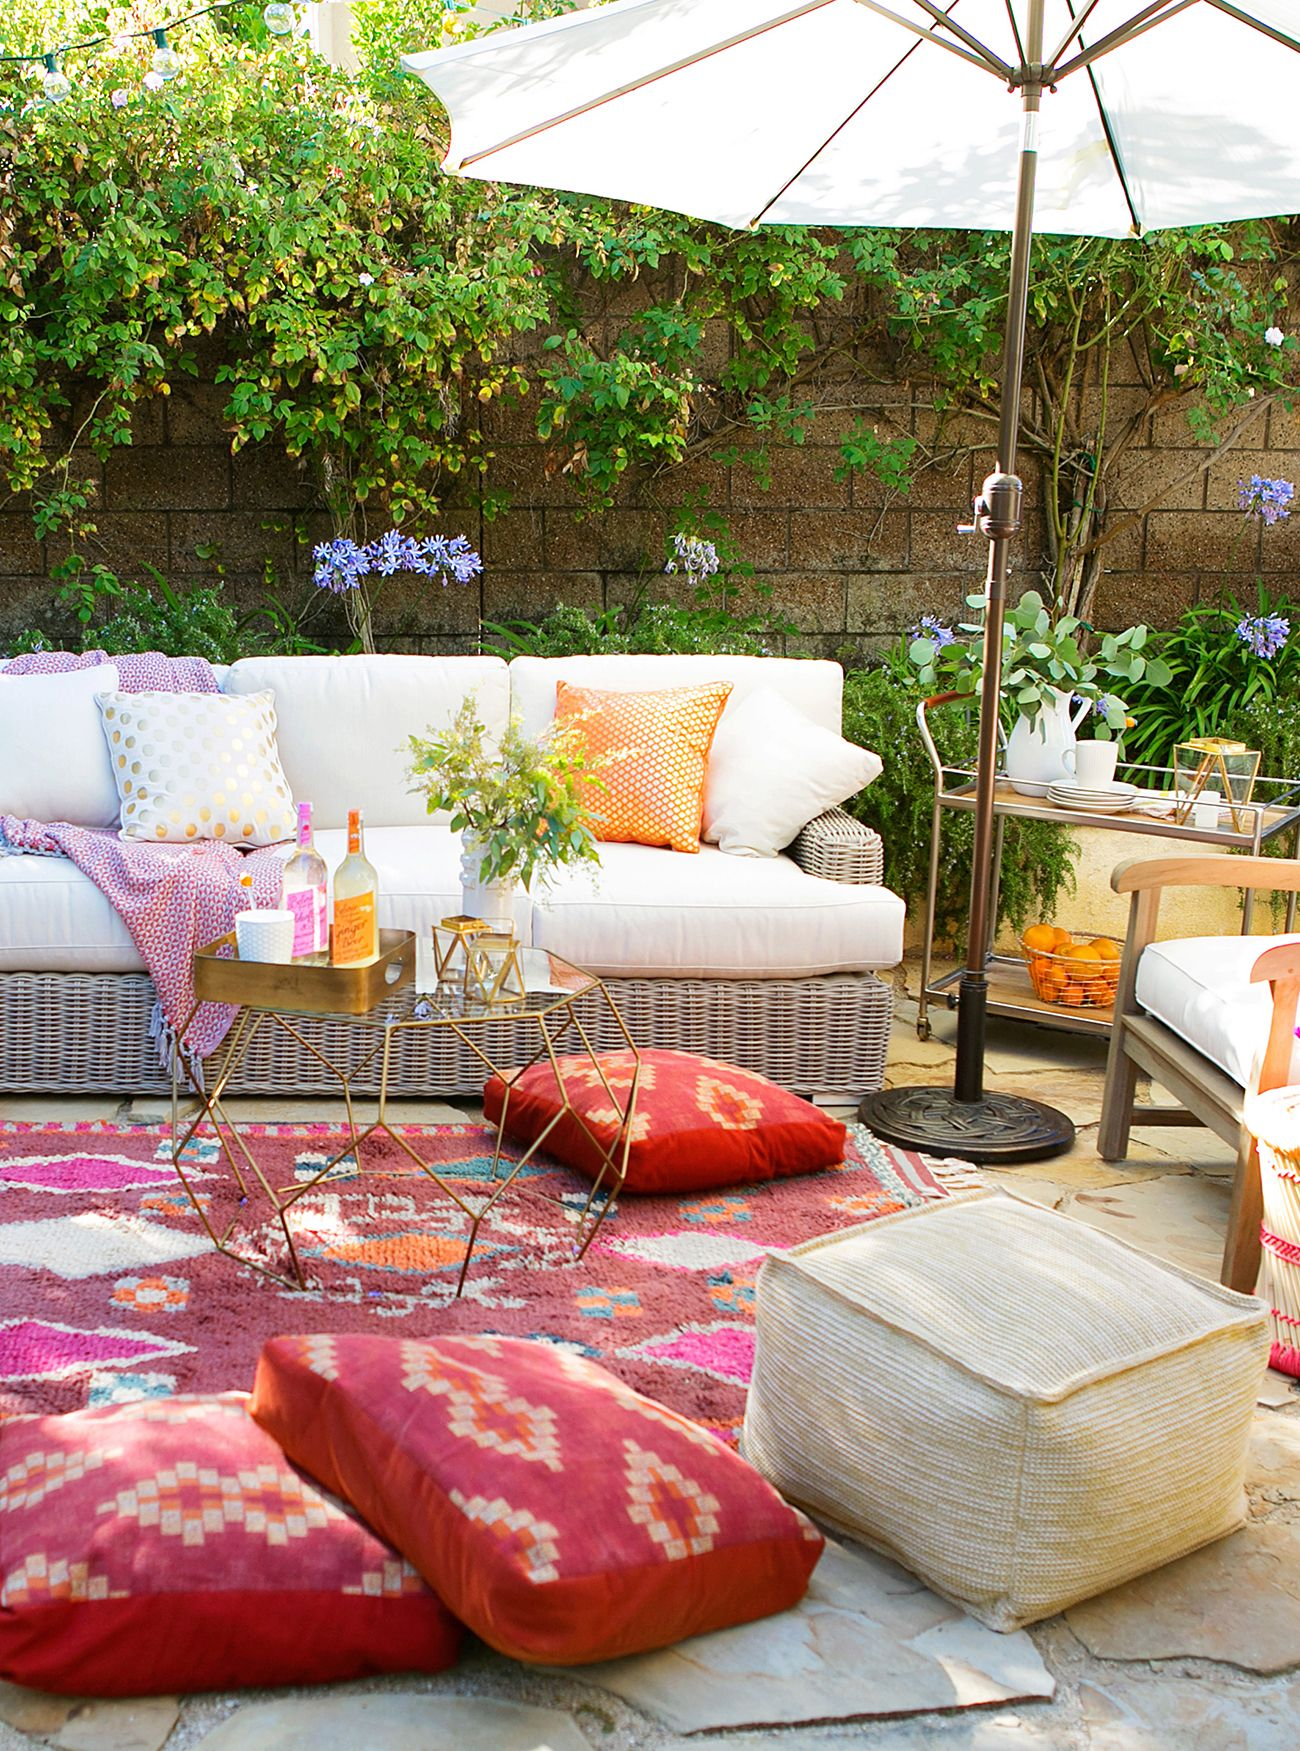 Pinterest Shabby Chic Garten 10 Inspiring Boho Chic Outdoor Spaces If I Lived In My Own